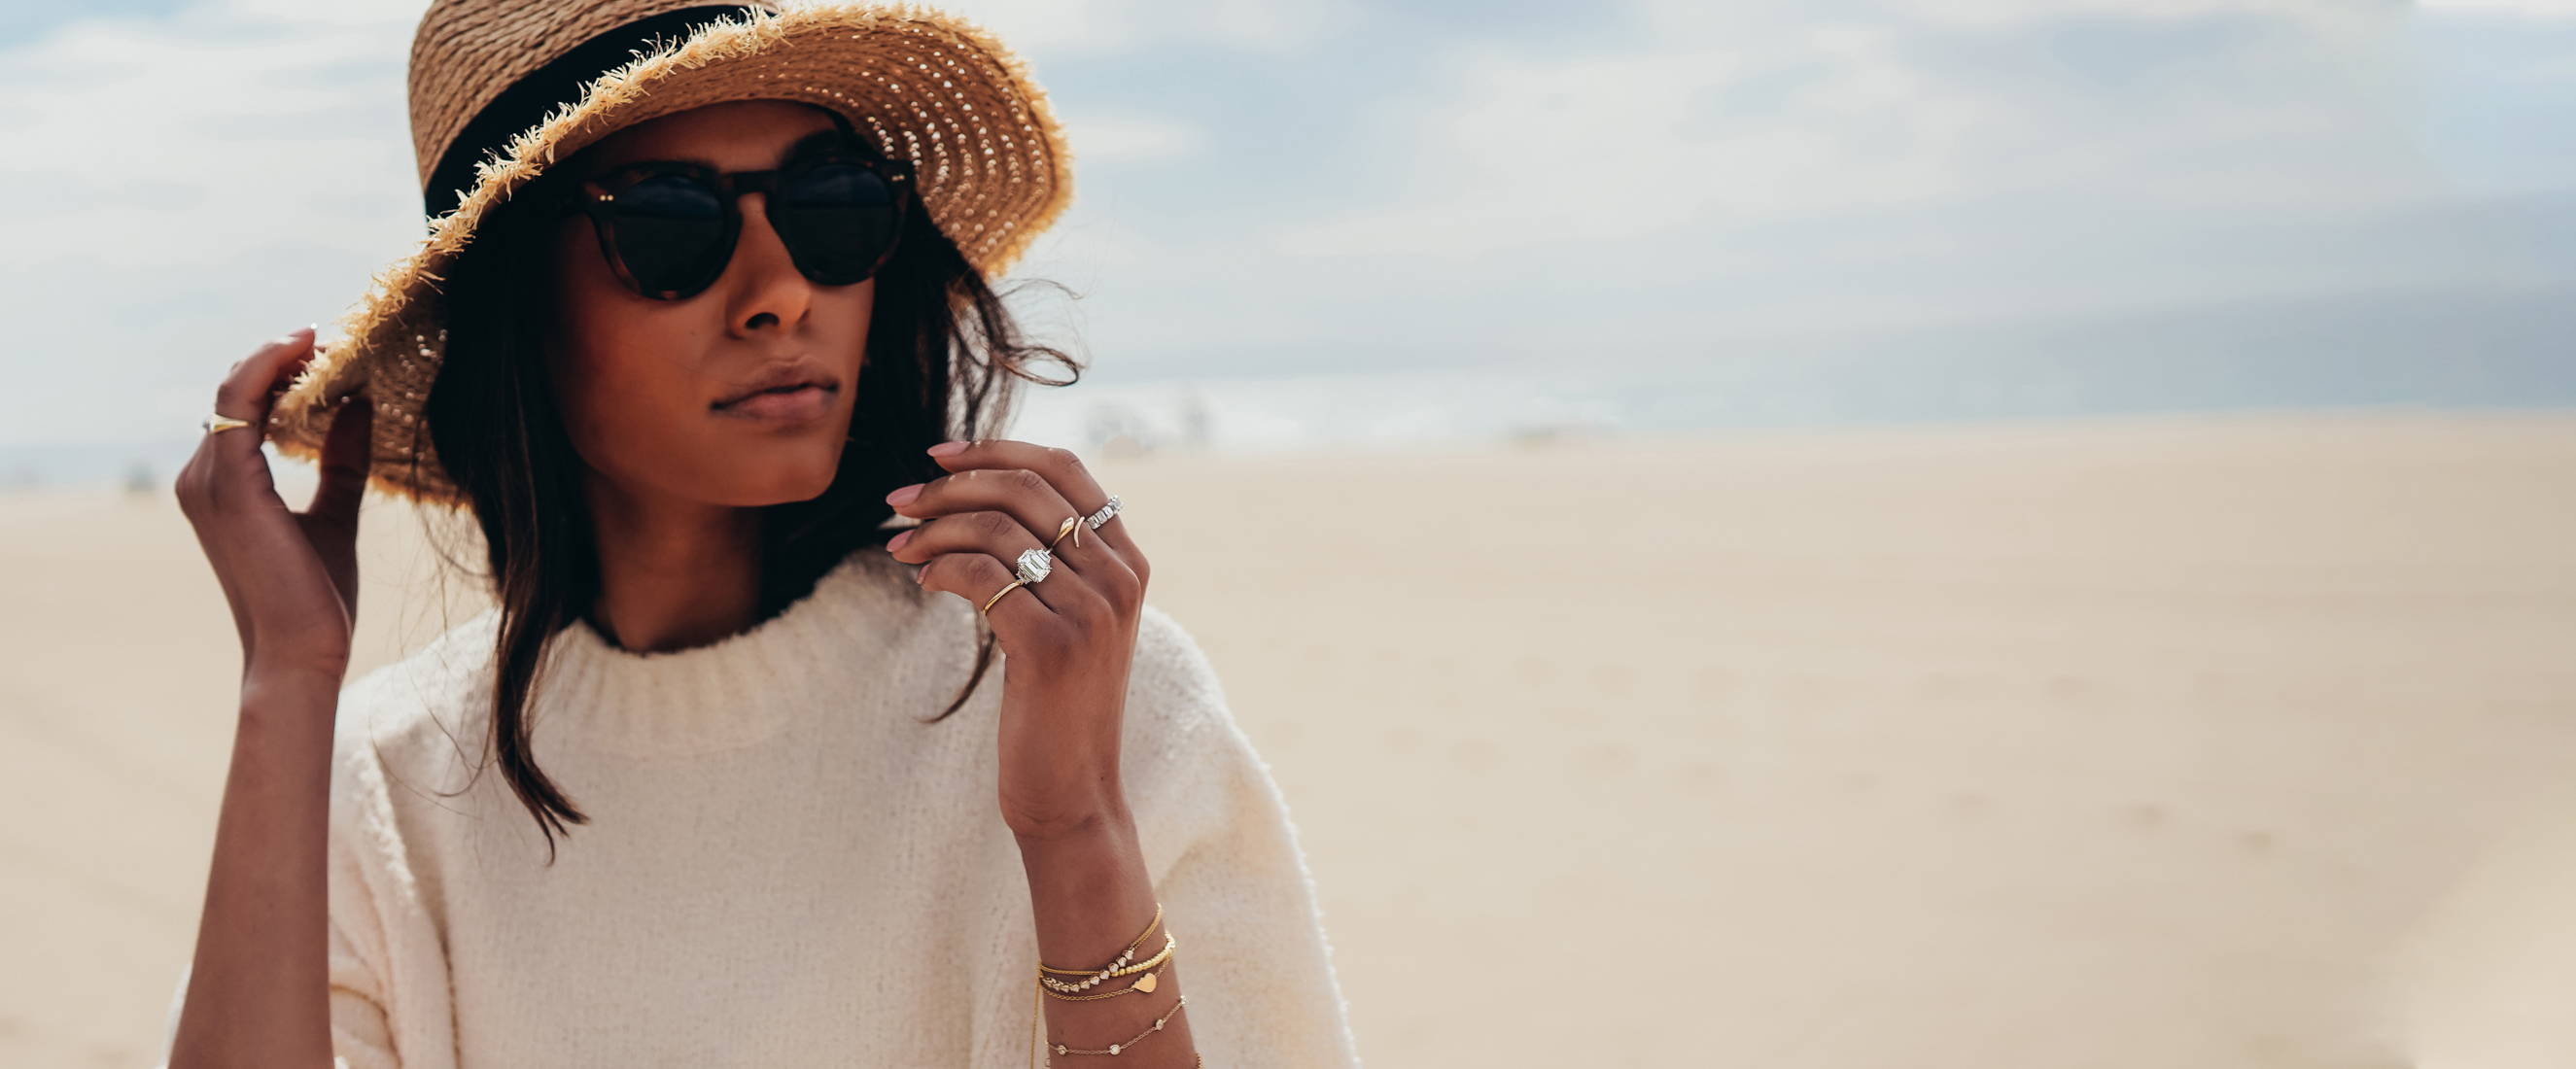 Model wearing beach hat and sweater on the beach in Ring Concierge jewelry